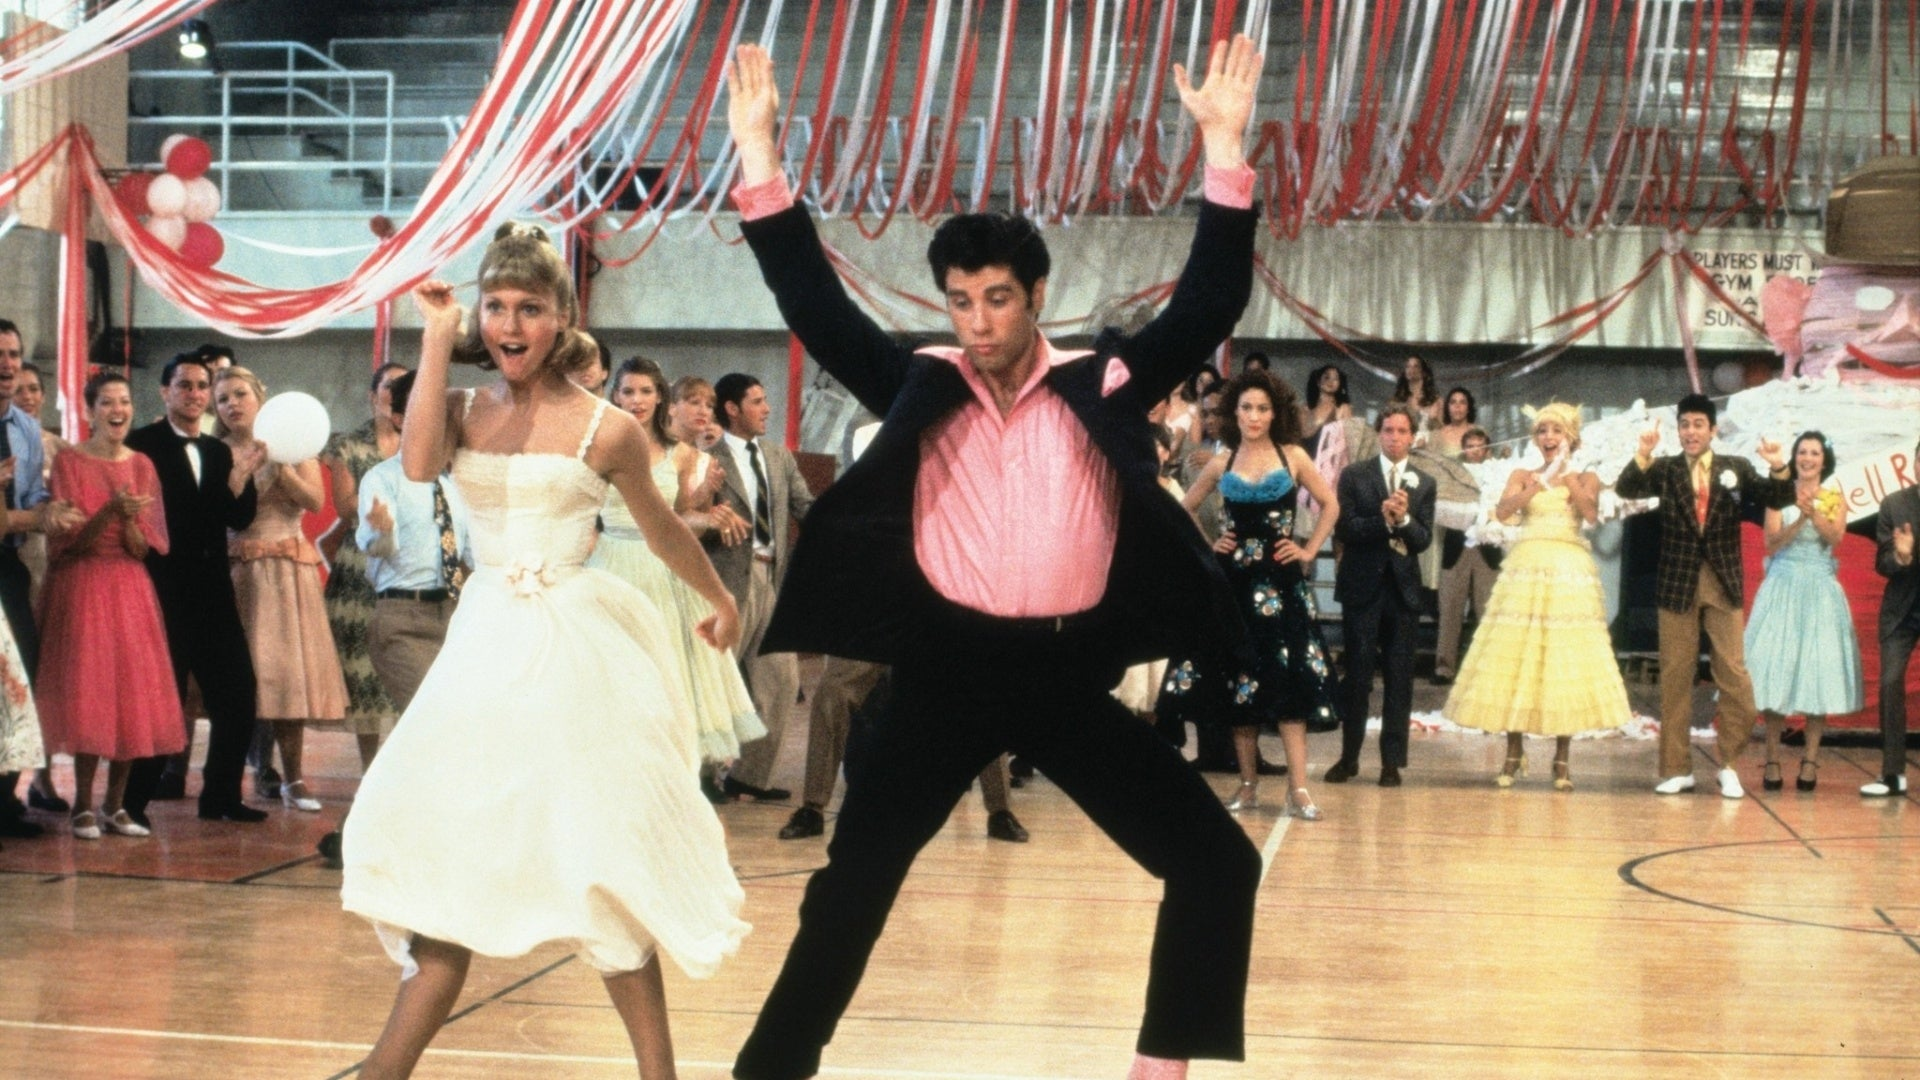 Stand out on prom night. Rock an outfit that's fun and unique, maybe even something that's Travolta-esque.